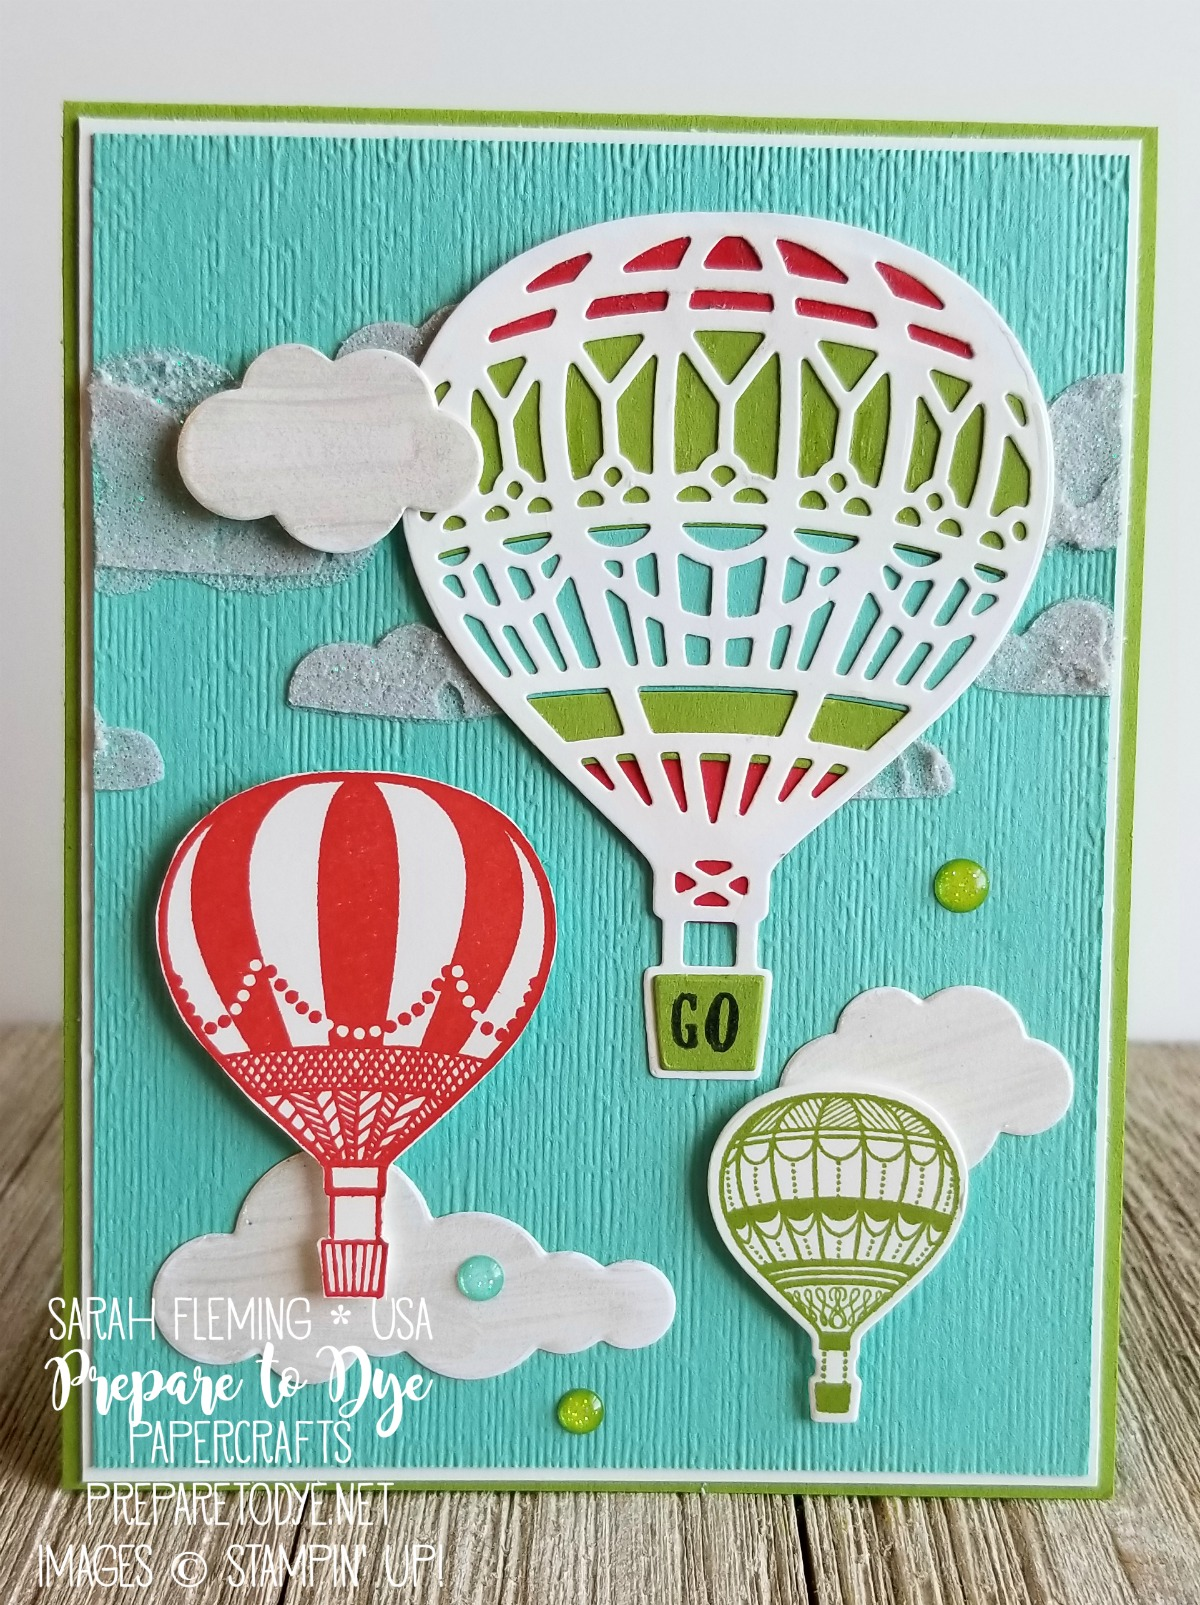 Stampin' Up! Lift Me Up stamps with Up & Away thinlits dies, Shimmery White embossing paste, Frost White Shimmer Paint, Subtle dynamic embossing folder - handmade travel card - Sarah Fleming - Prepare to Dye Papercrafts